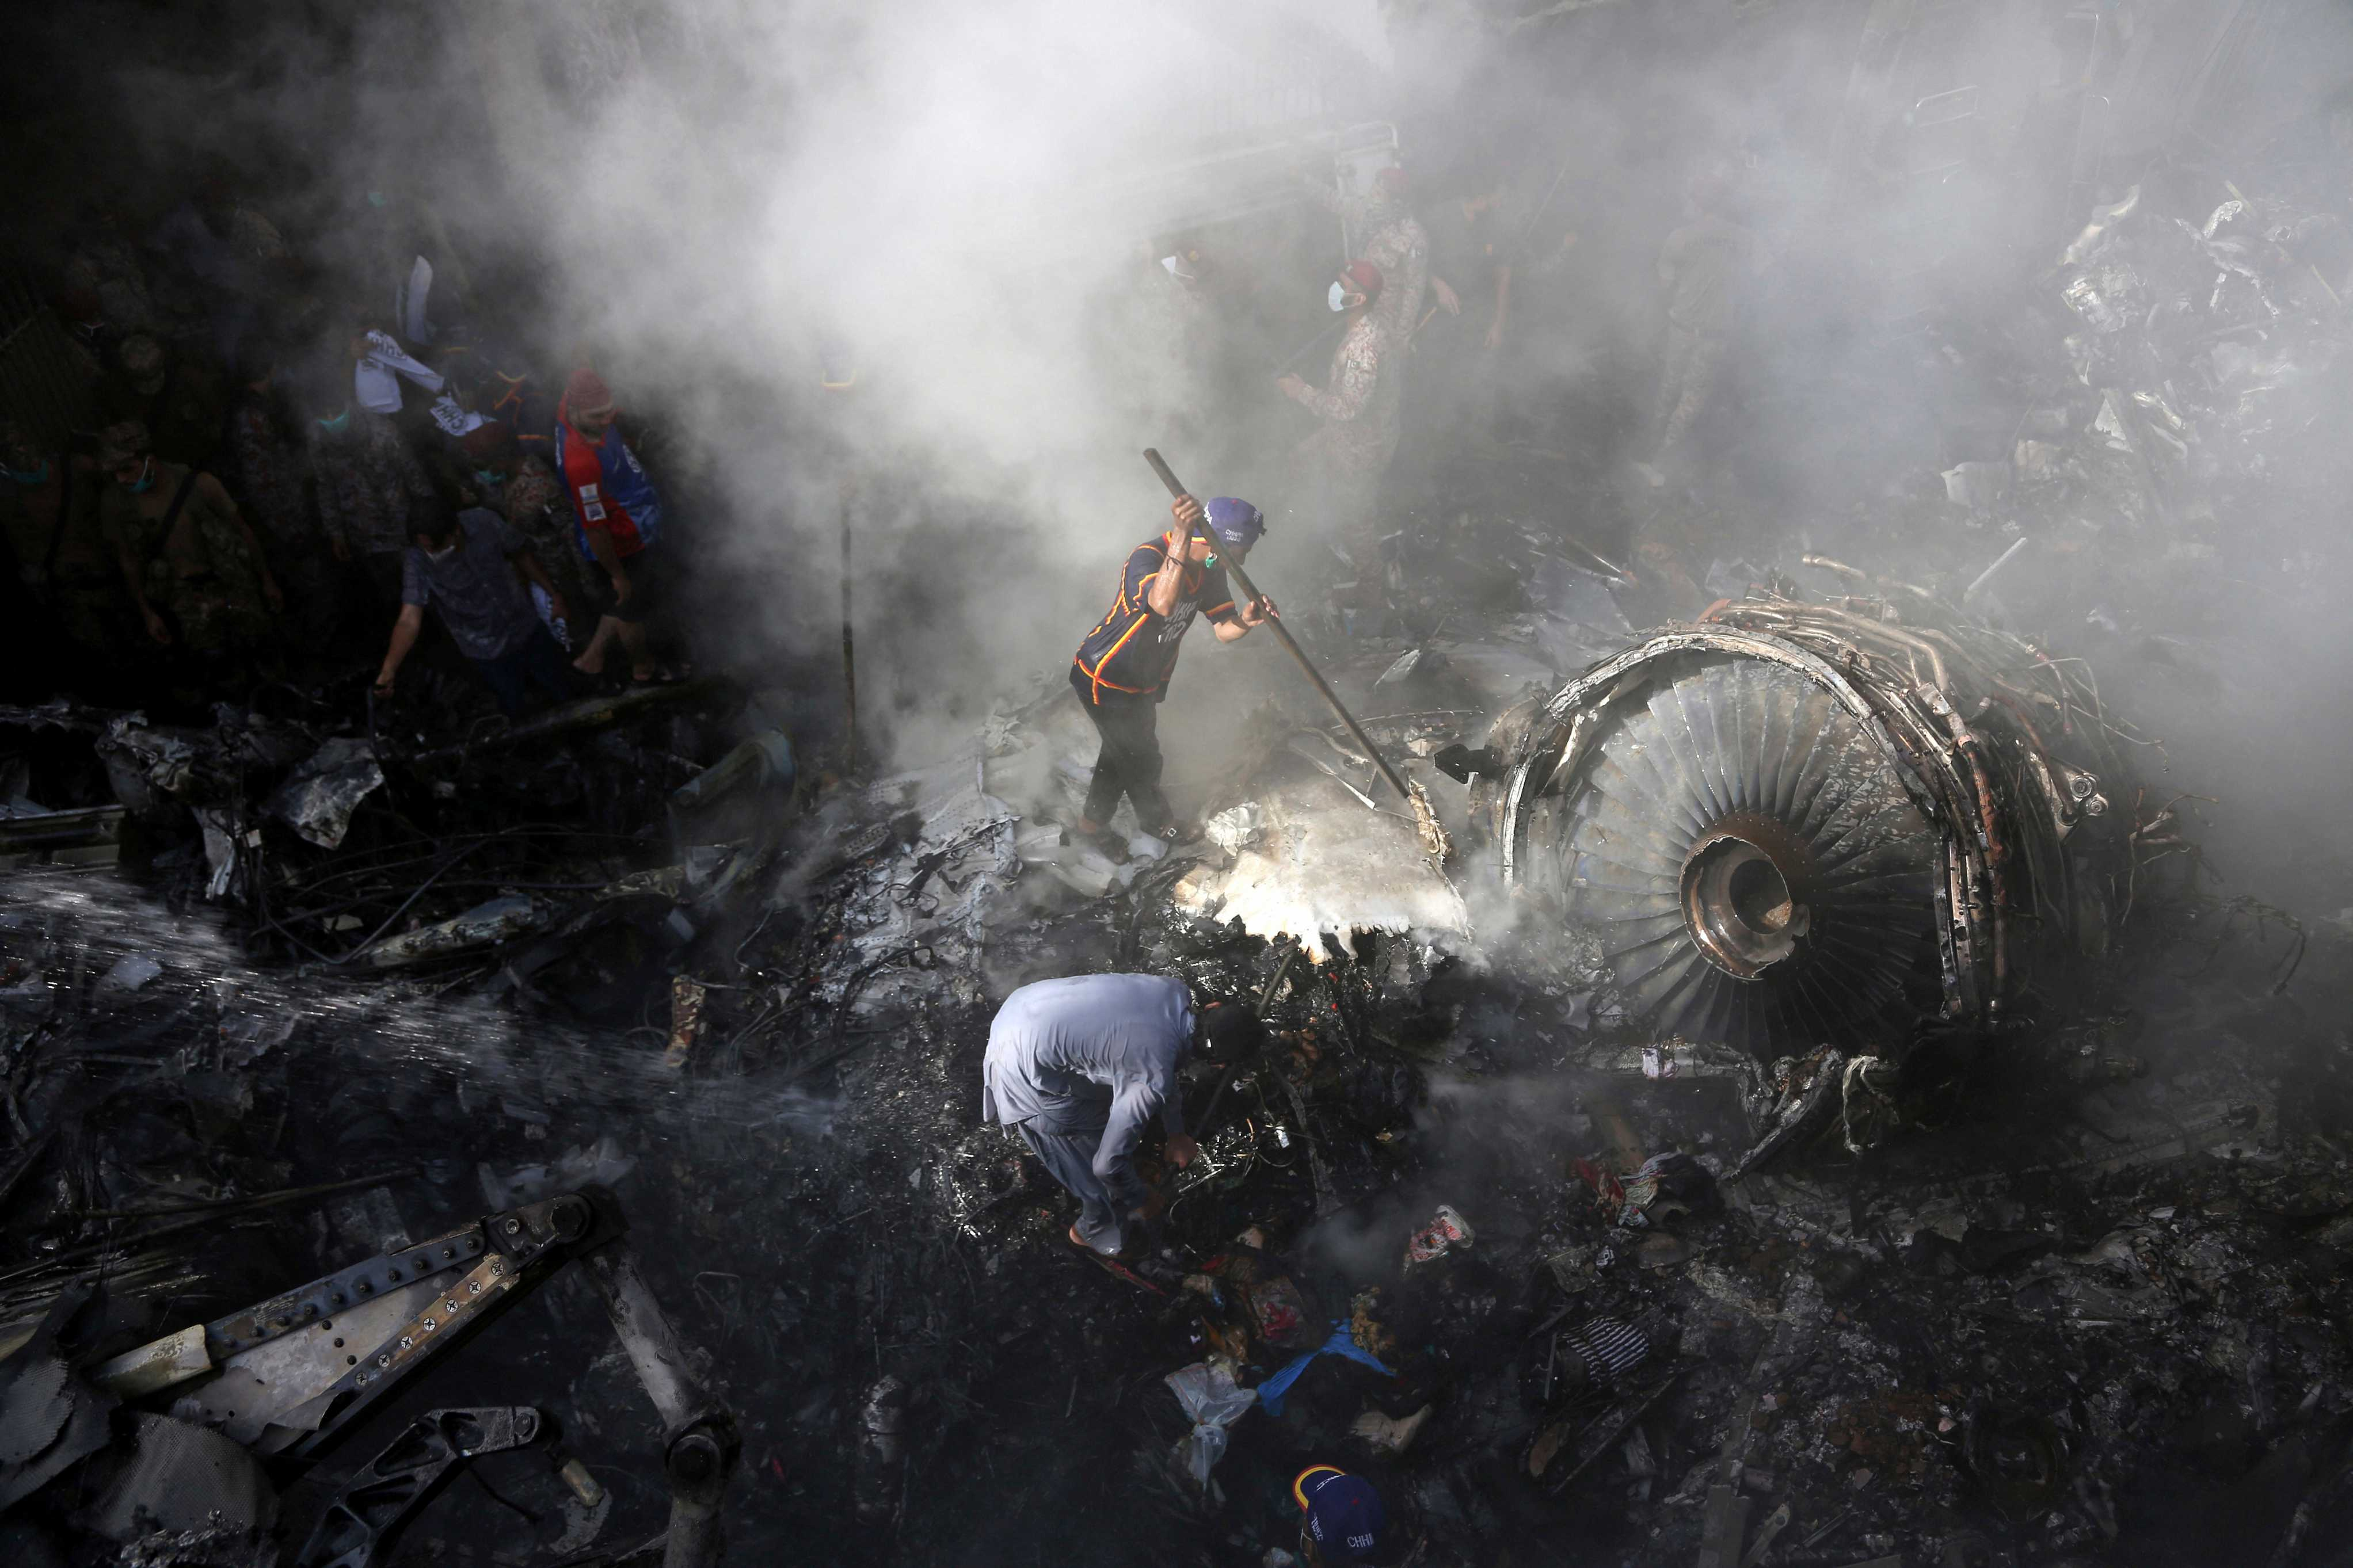 Volunteers look for survivors of a plane that crashed in a residential area of Karachi, Pakistan. (AP photo)